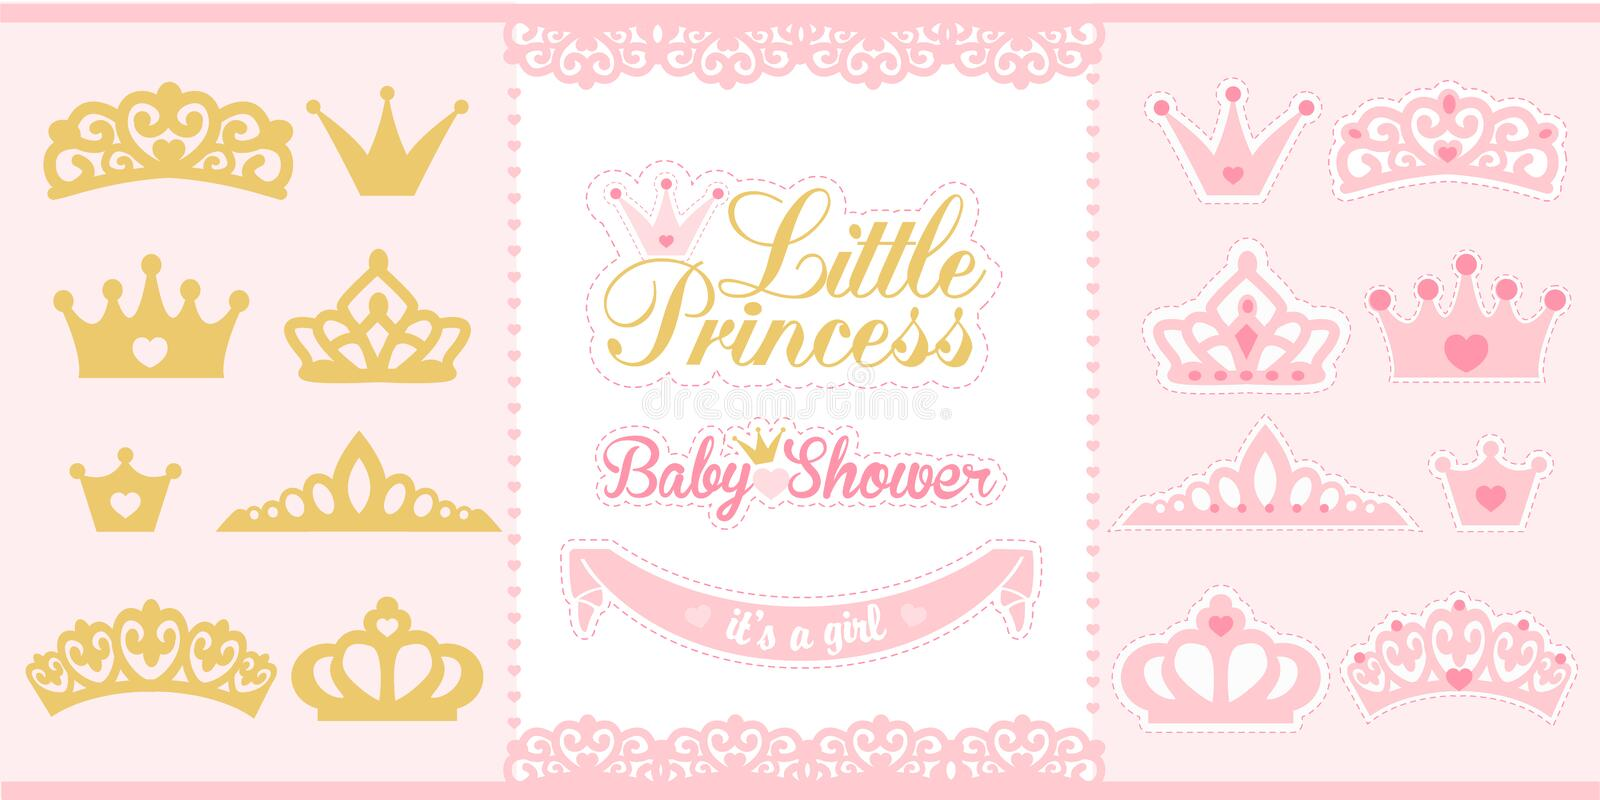 Gold and pink crowns set. Little princess design elements. Template silhouettes of crowns for laser cutting. Birthday party and girl baby shower decor royalty free illustration